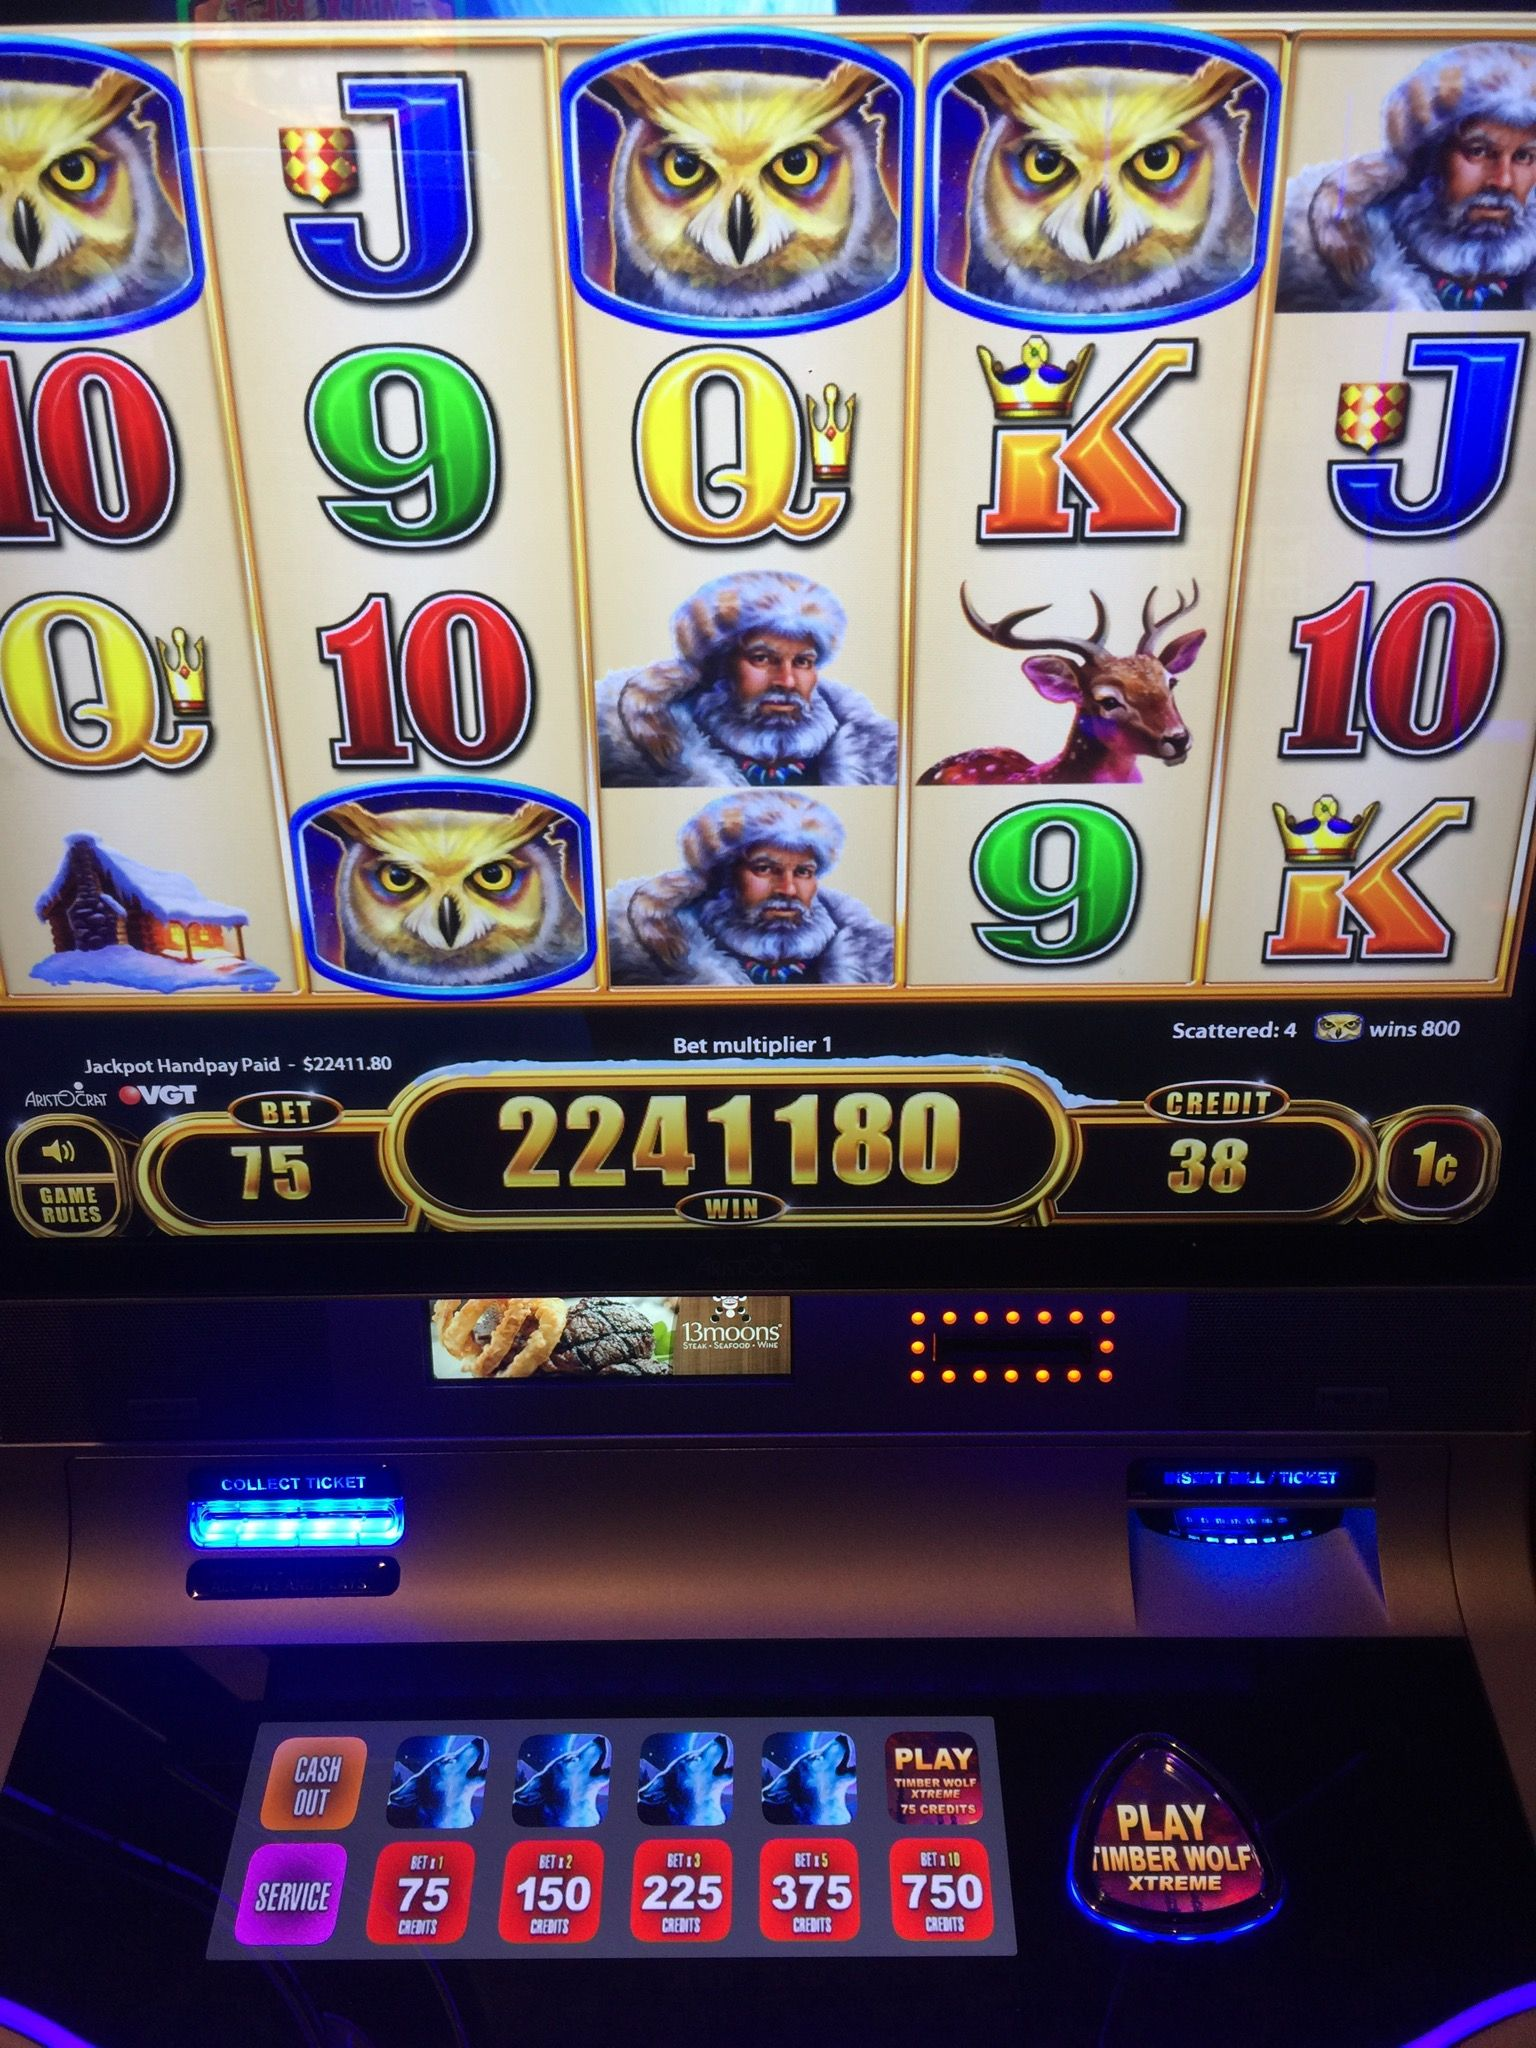 JACKPOT ALERT 💰 Check out this XTREME win of 22,411.80